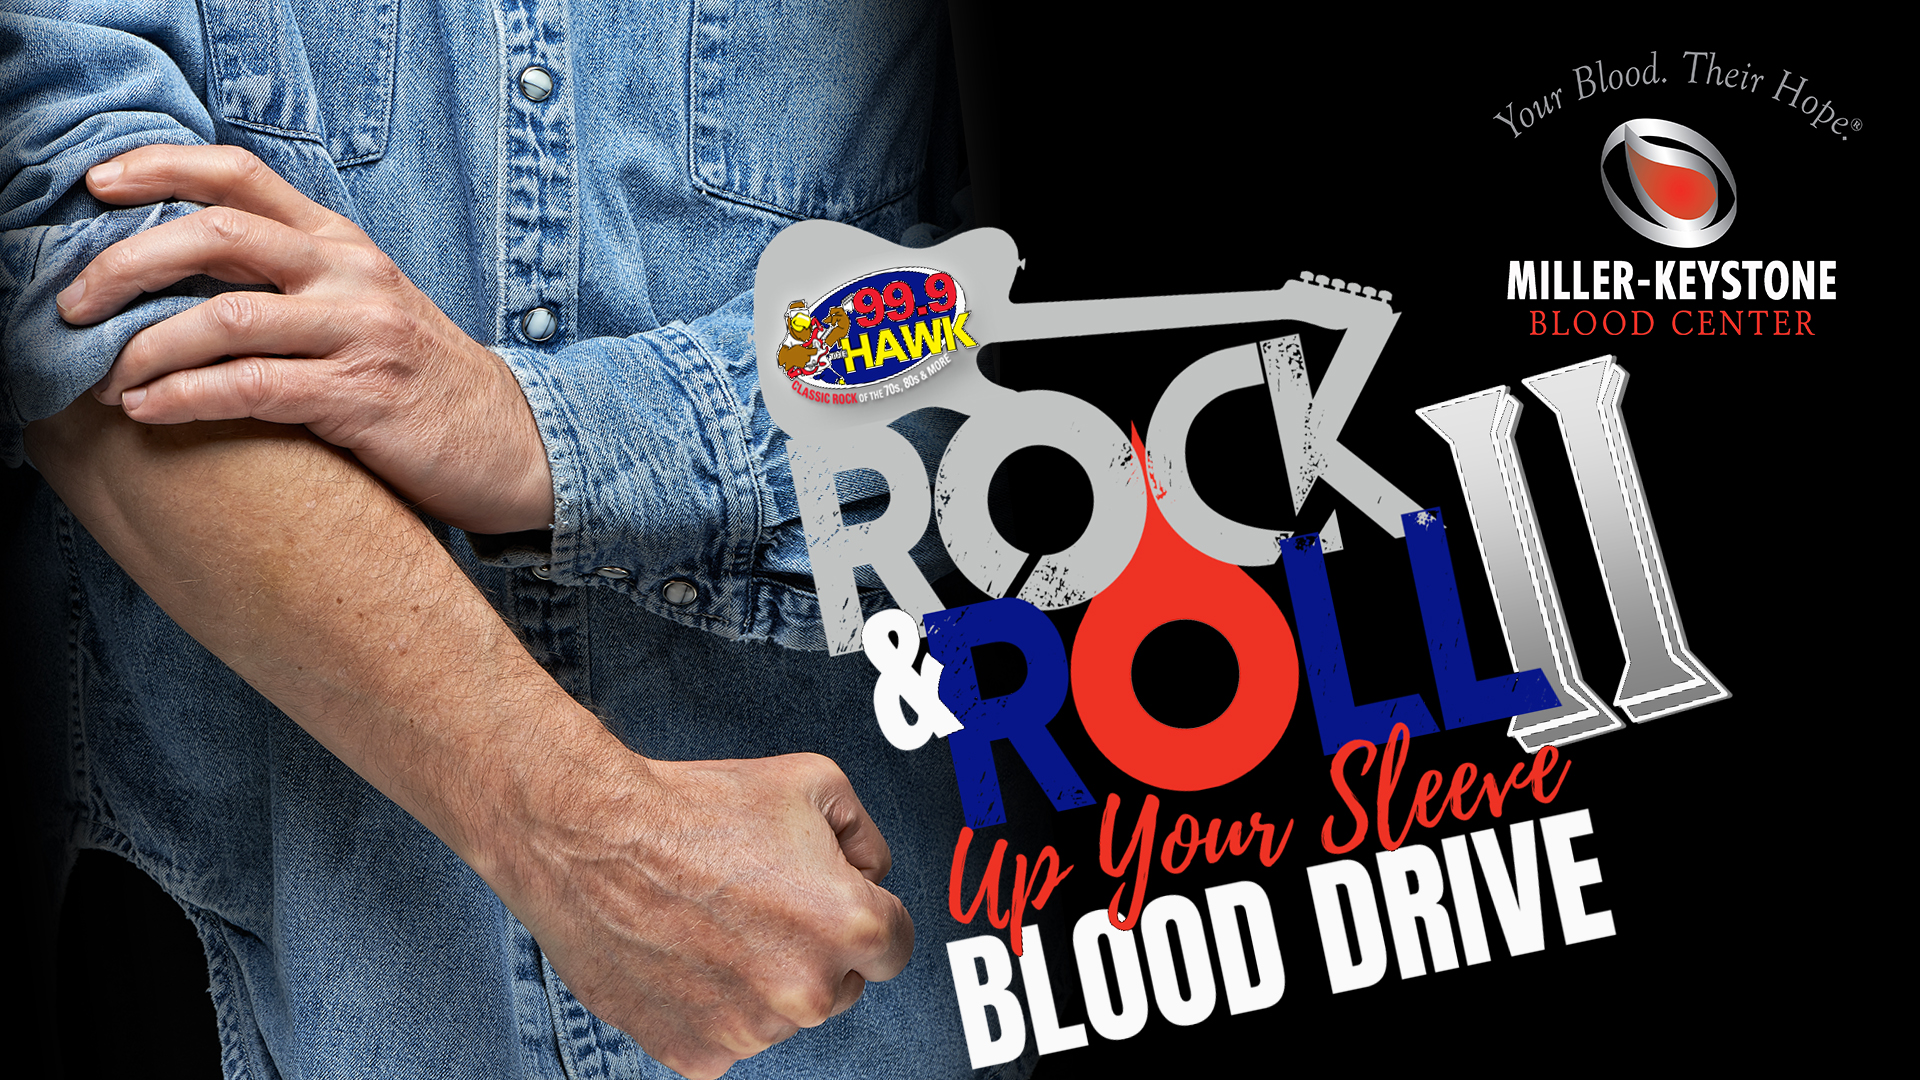 Second Rock & Roll Up Your Sleeve Blood Drive with 99.9 The Hawk